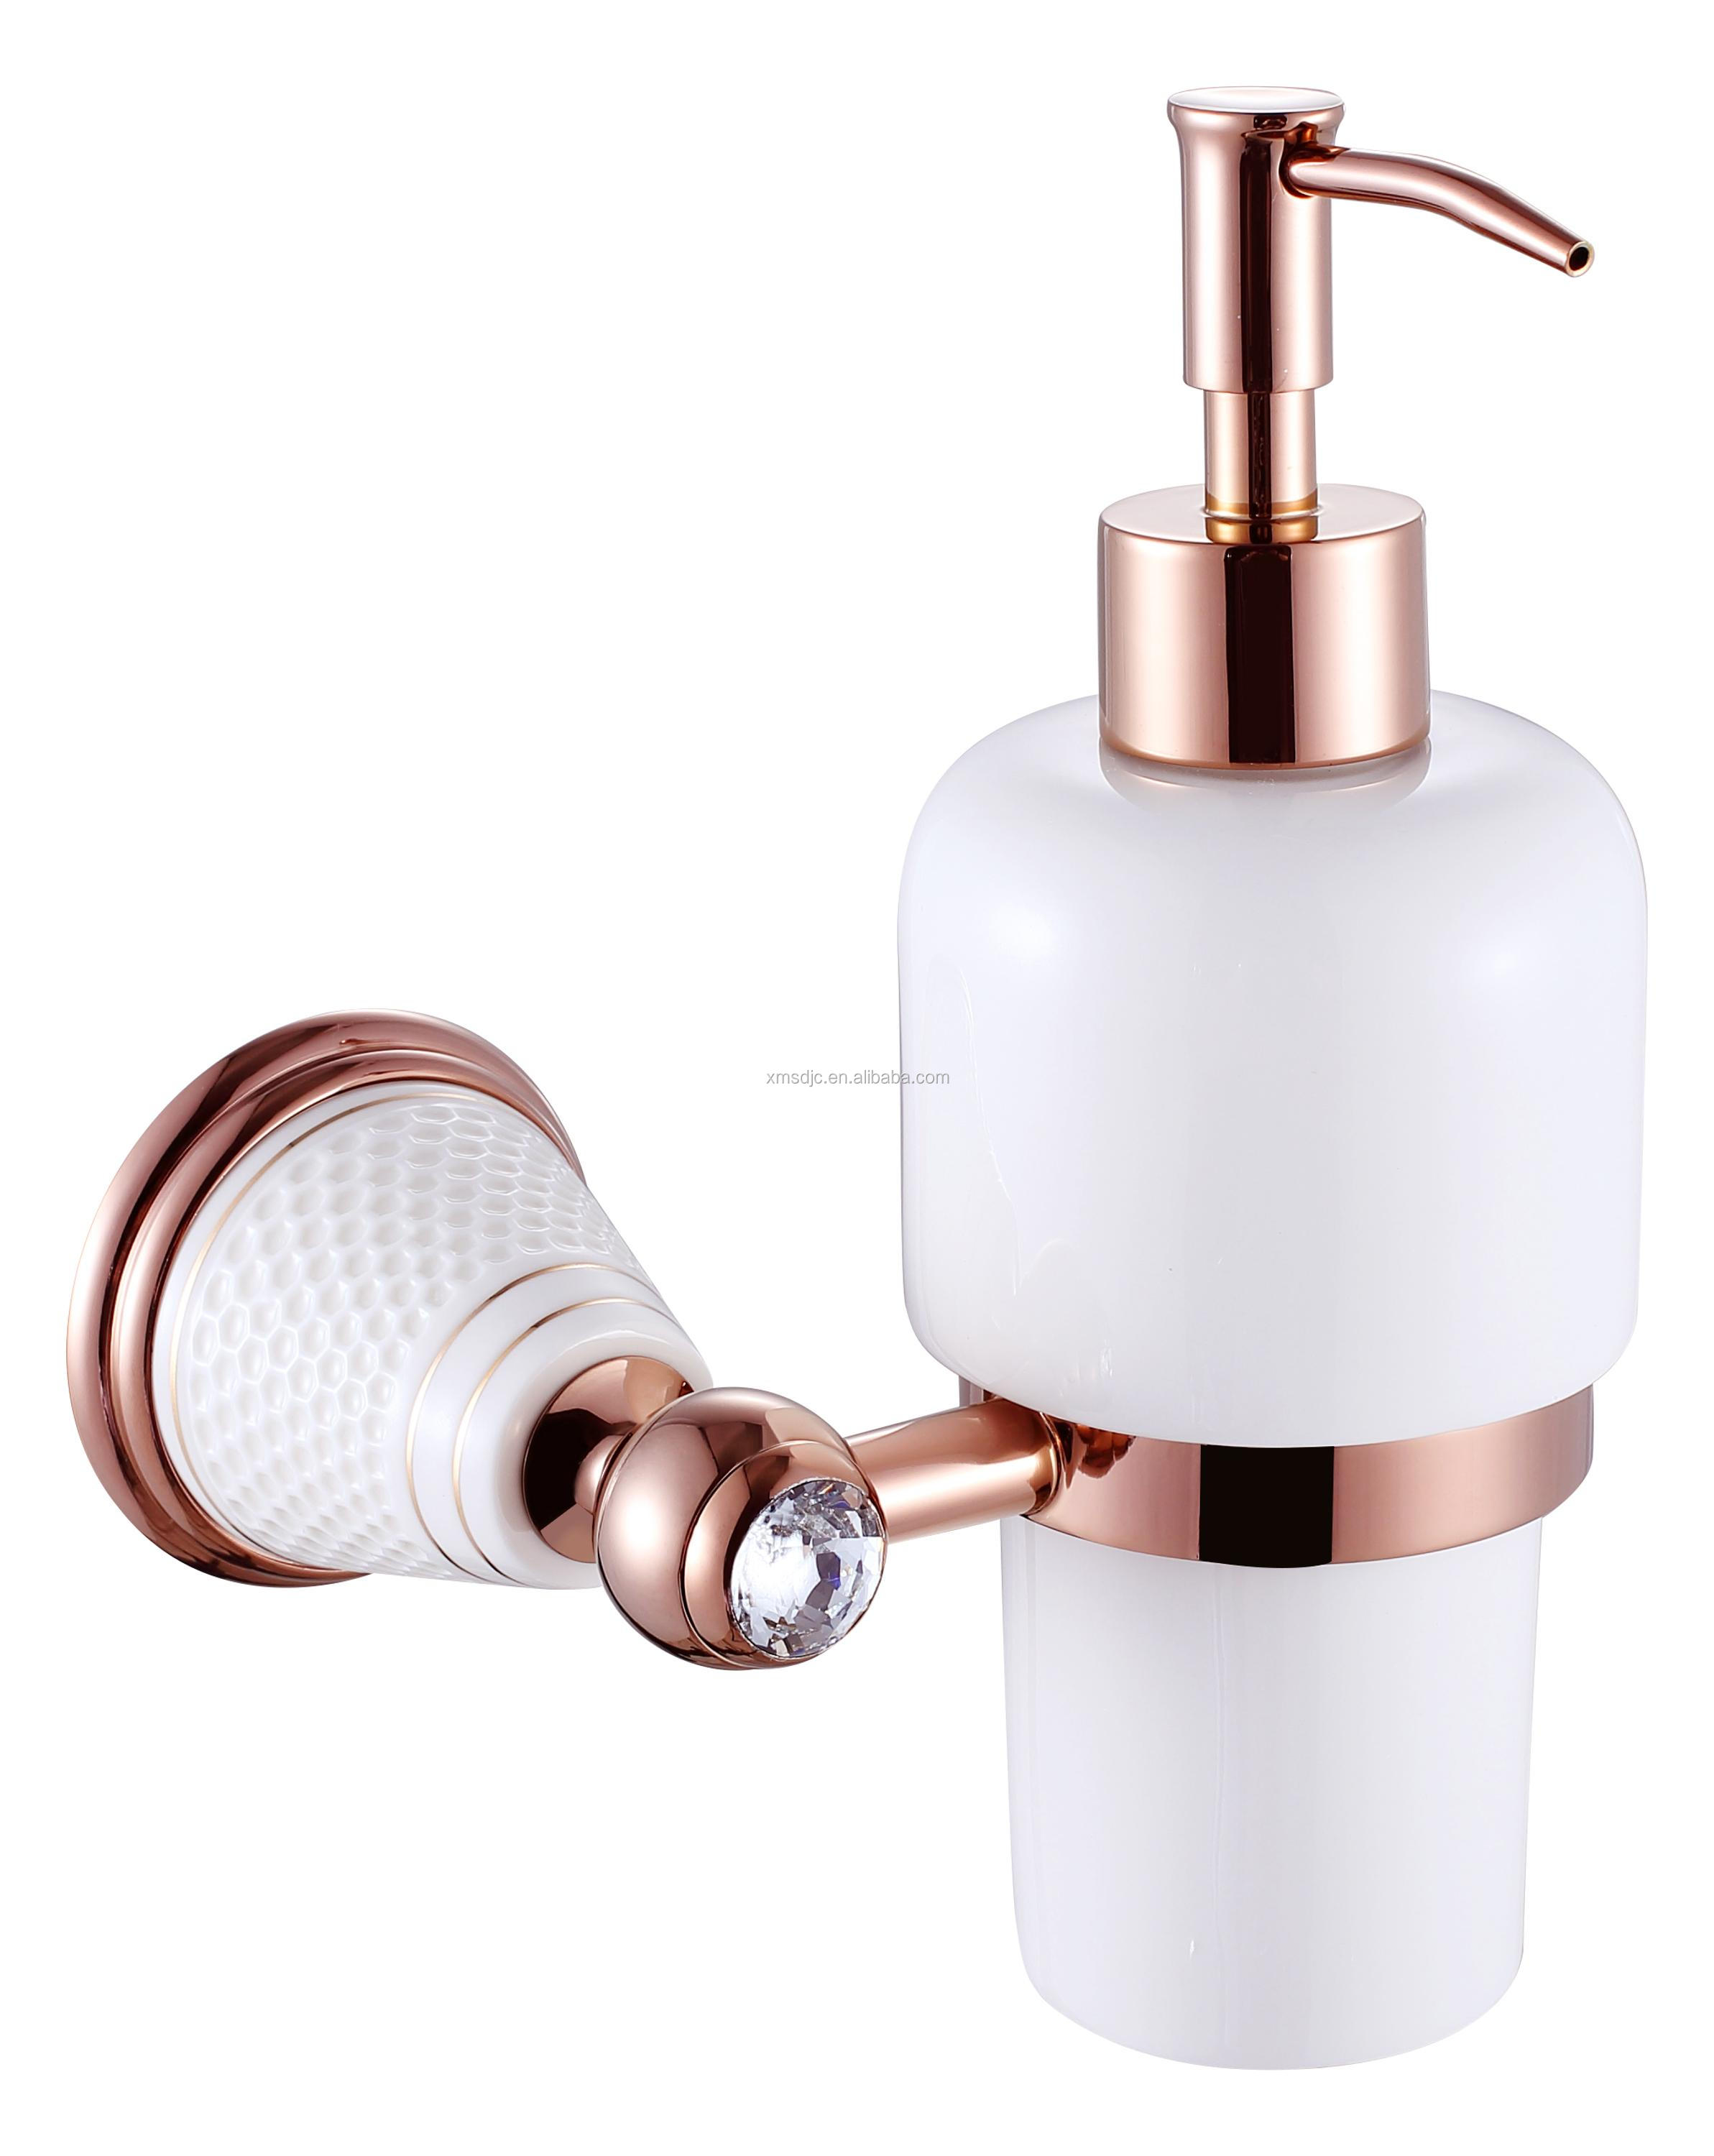 Cat Soap Dispenser Cat Soap Dispenser Suppliers and Manufacturers